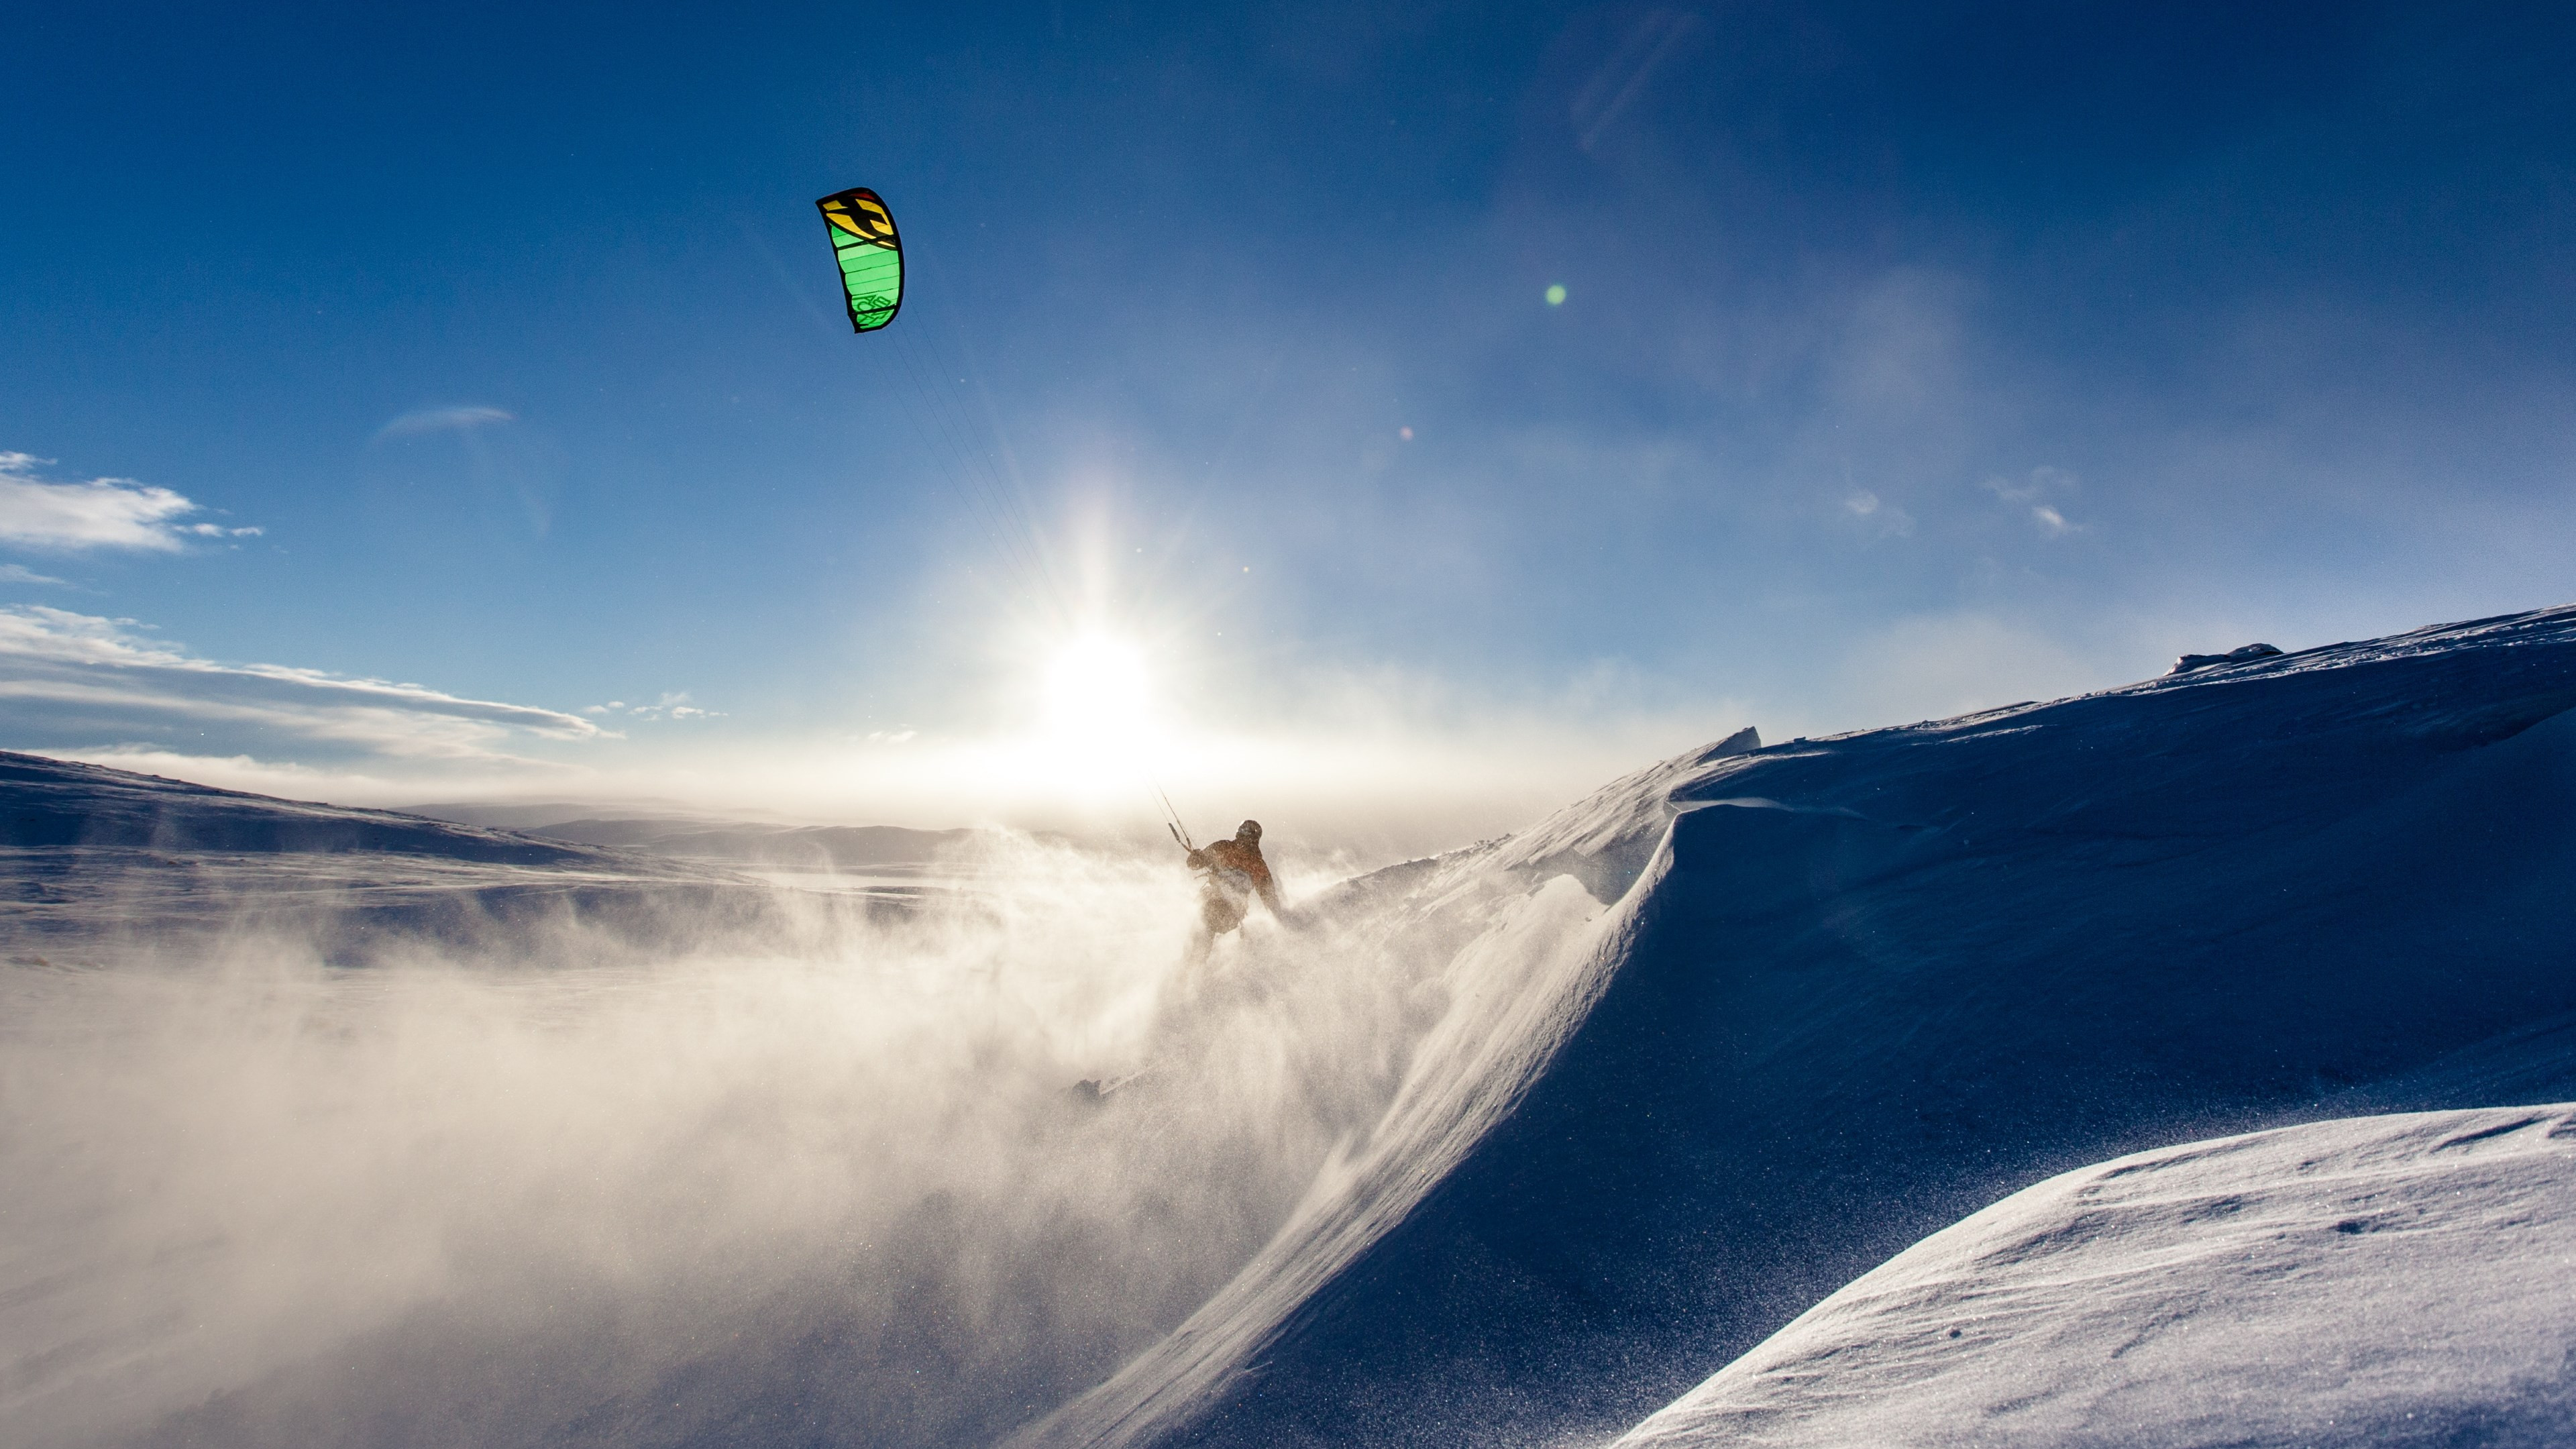 Kiteboarder on snow wallpaper 3840x2160